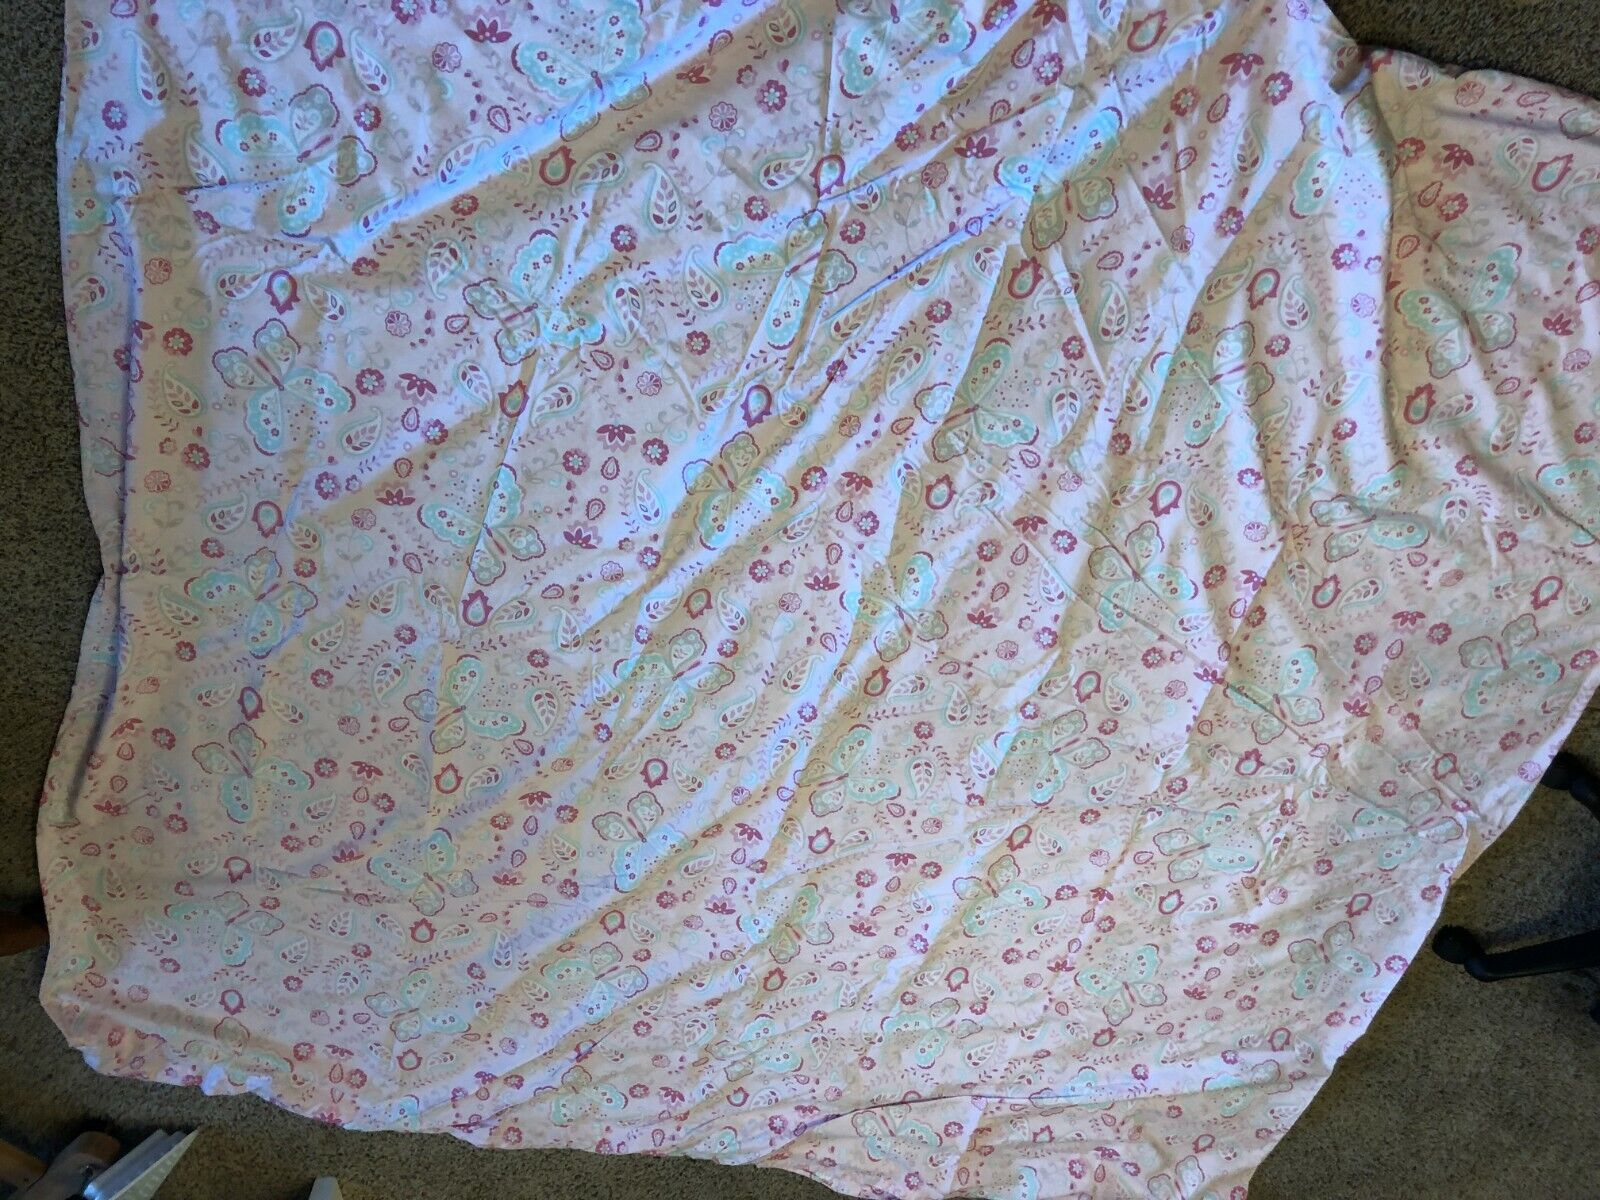 Pottery Barn Kids Duvet Cover Full Queen Pink With Butterfly Pattern And Buttons - $1.00